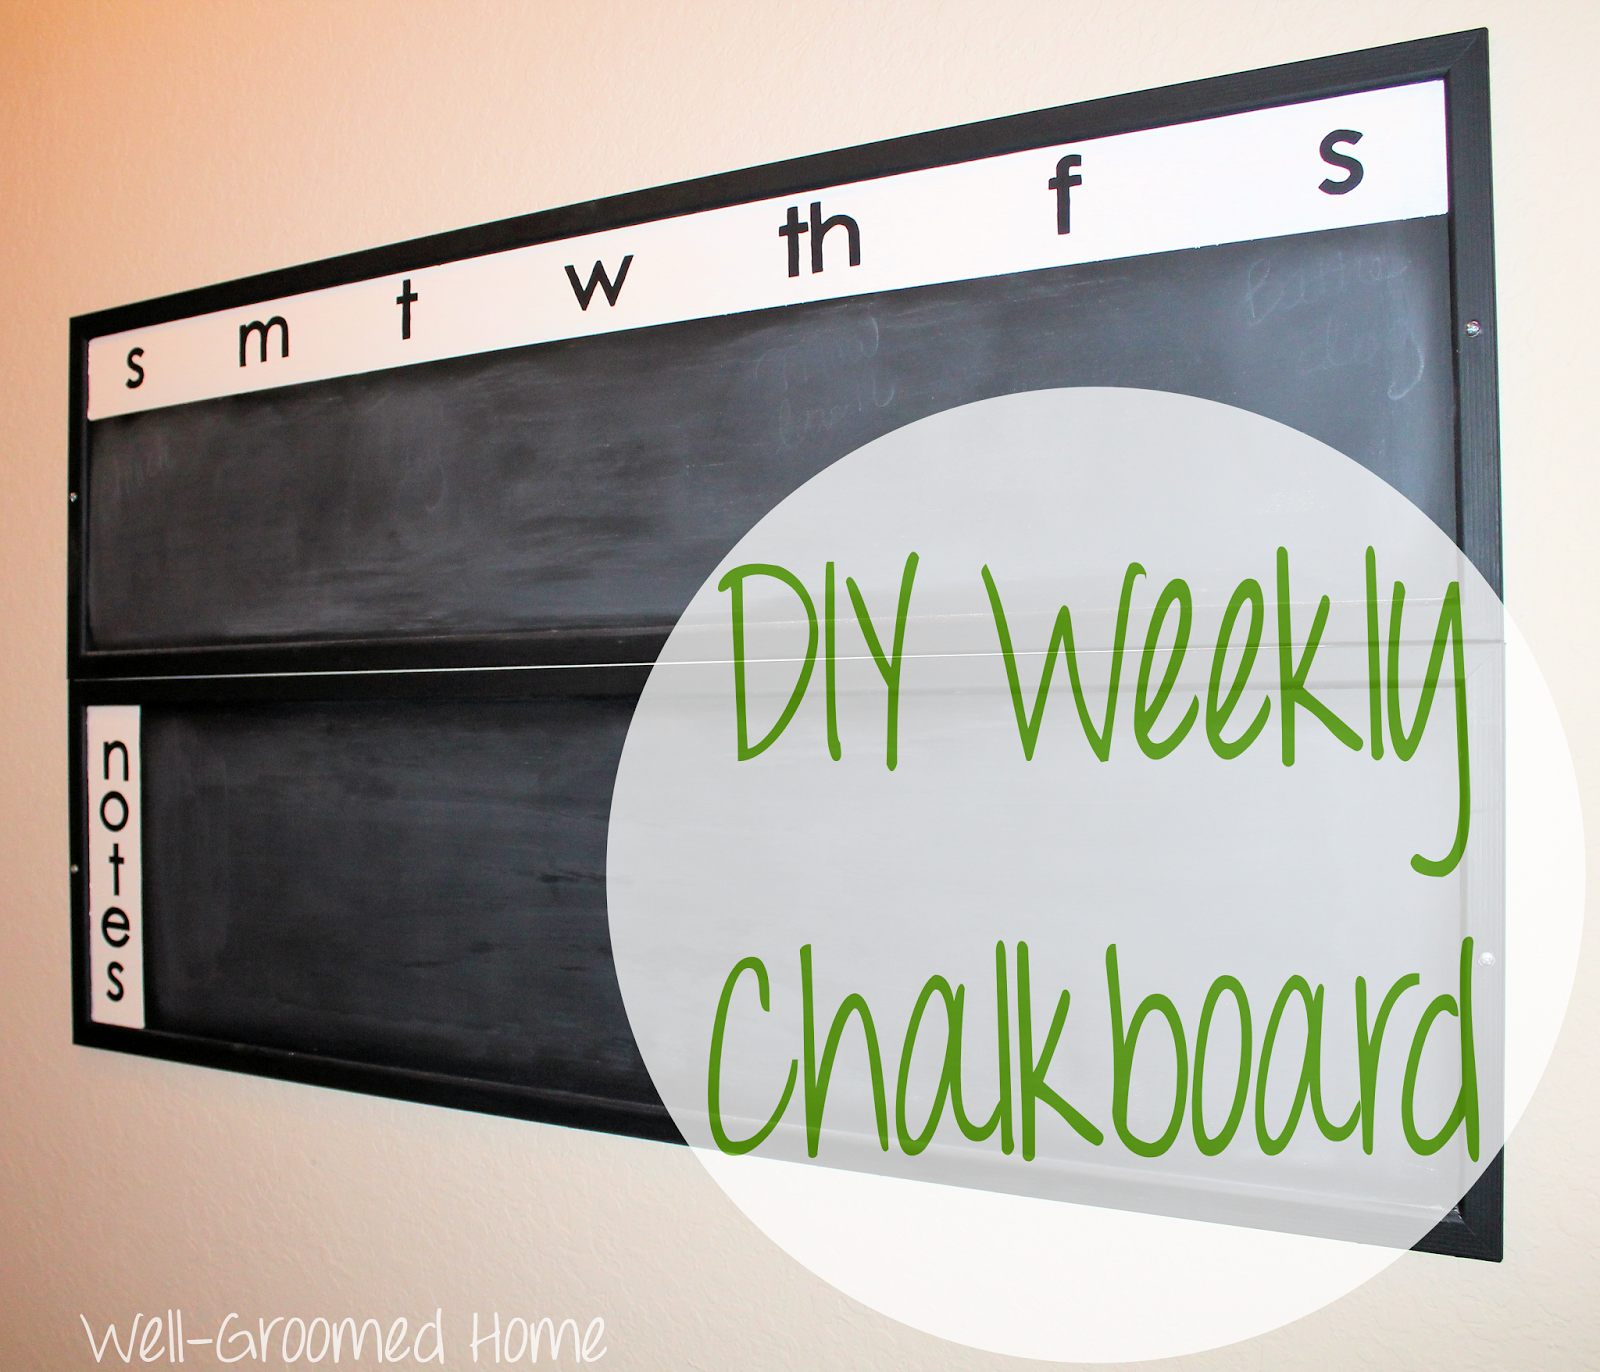 Diy Weekly Chalkboard Calendar  Well Groomed Home